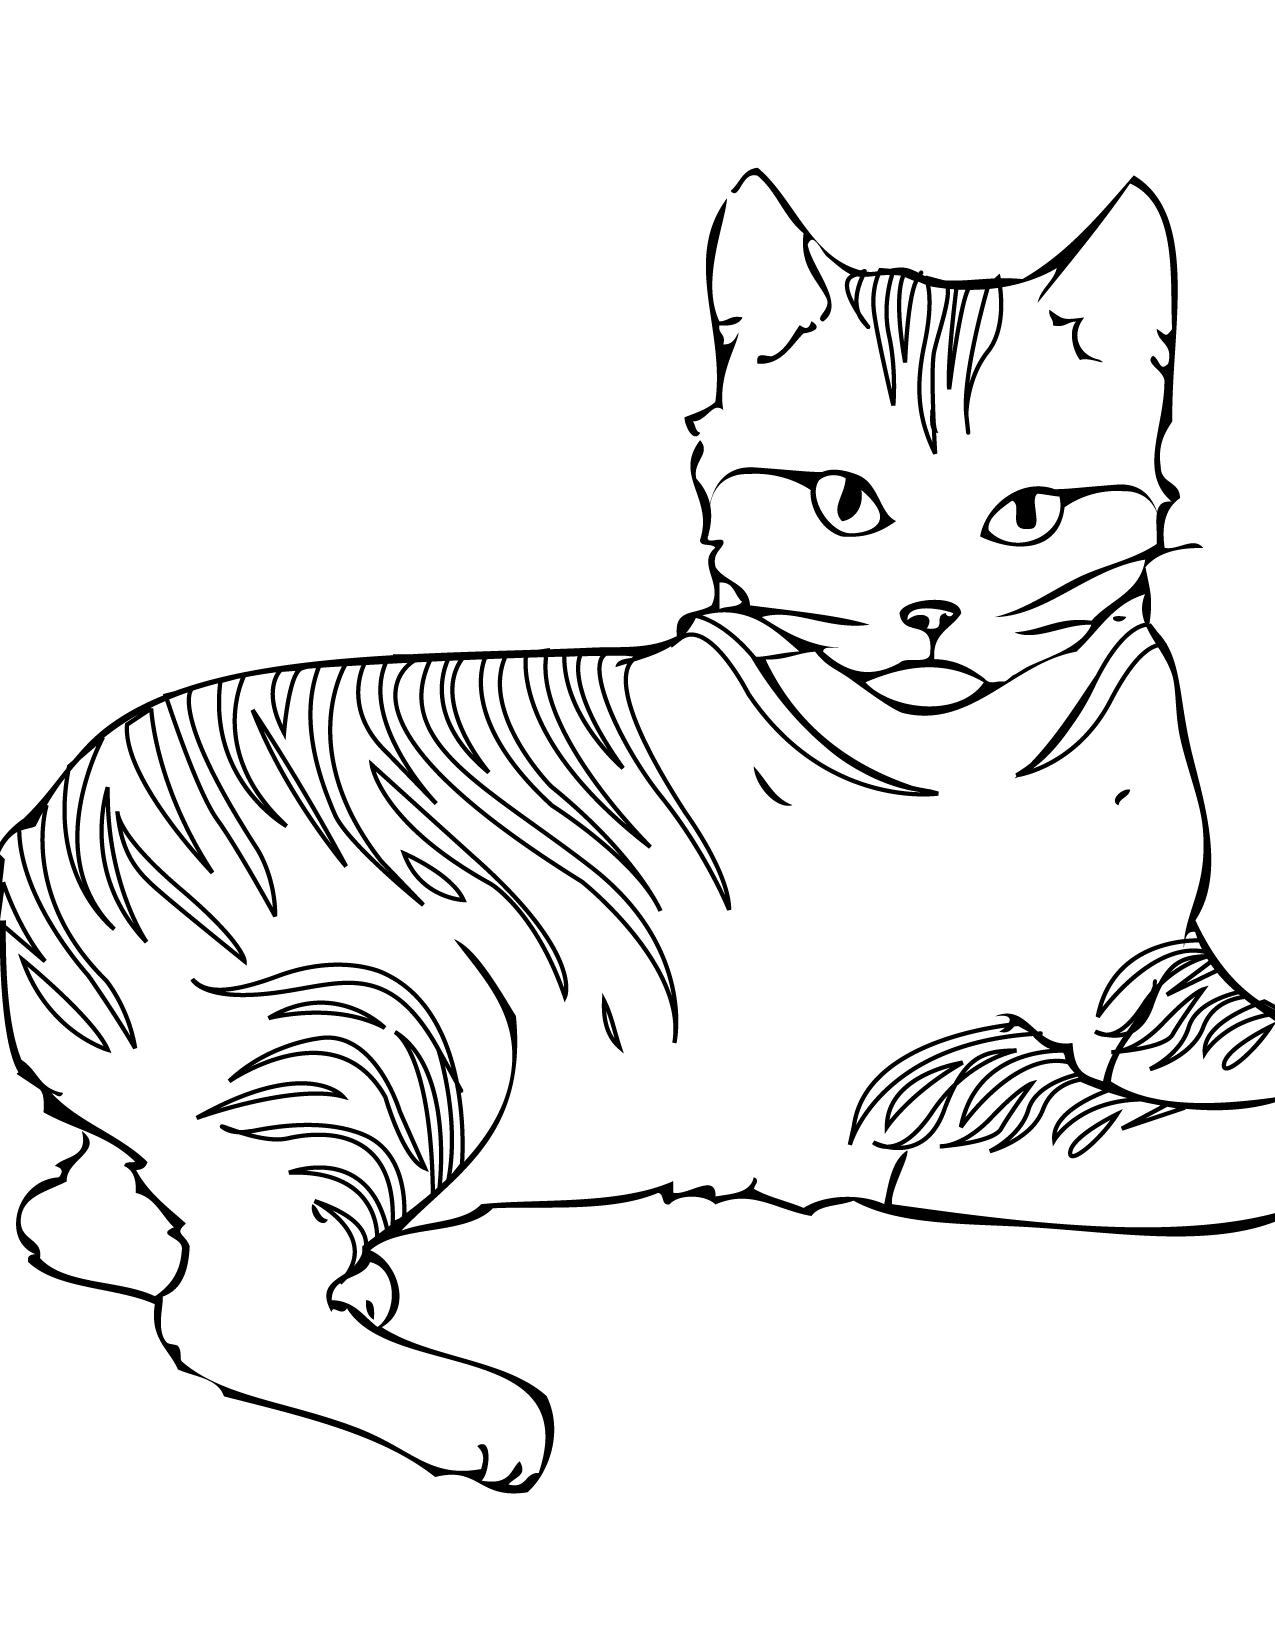 1275x1650 Unique Realistic Cat Coloring Pages Collection Free Coloring Pages